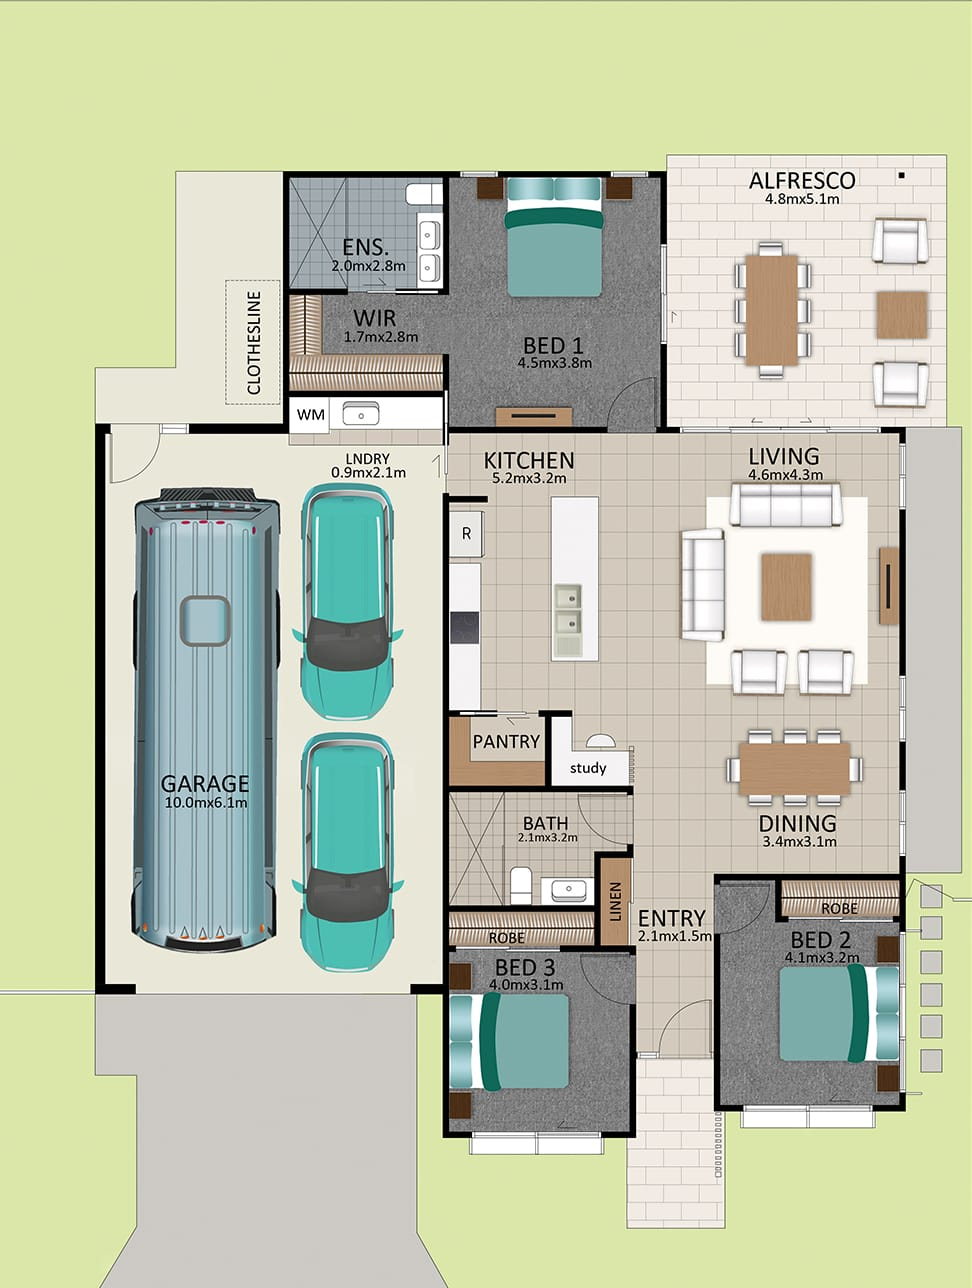 LR WEB LAT25 Floorplan LOT 161 Robson Mirrored JUL19 V1 - Lot 161